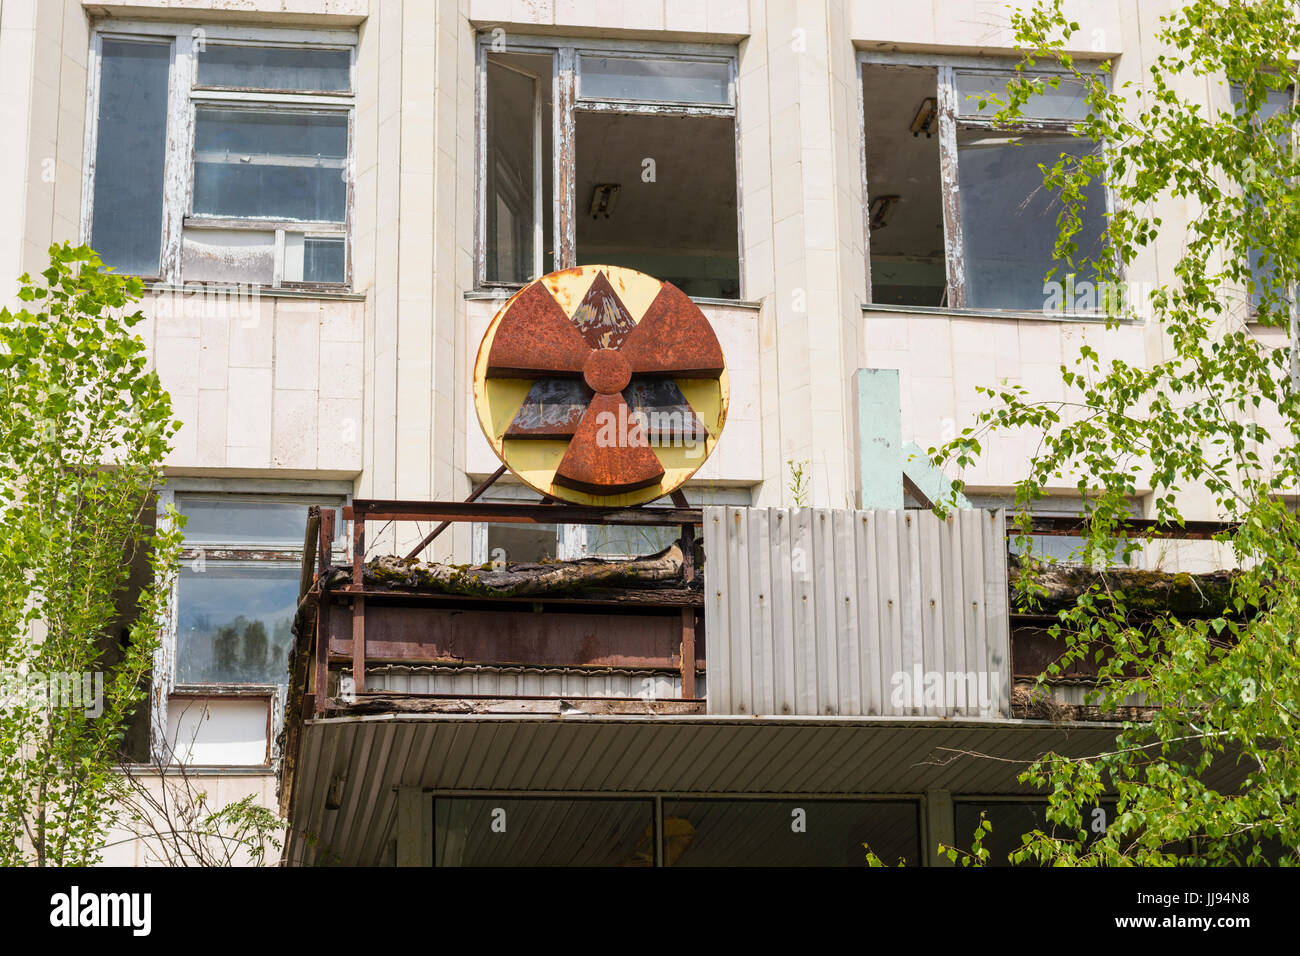 Radiation sign on building facade in ghost city of Pripyat in Chernobyl Exclusion Zone - Stock Image